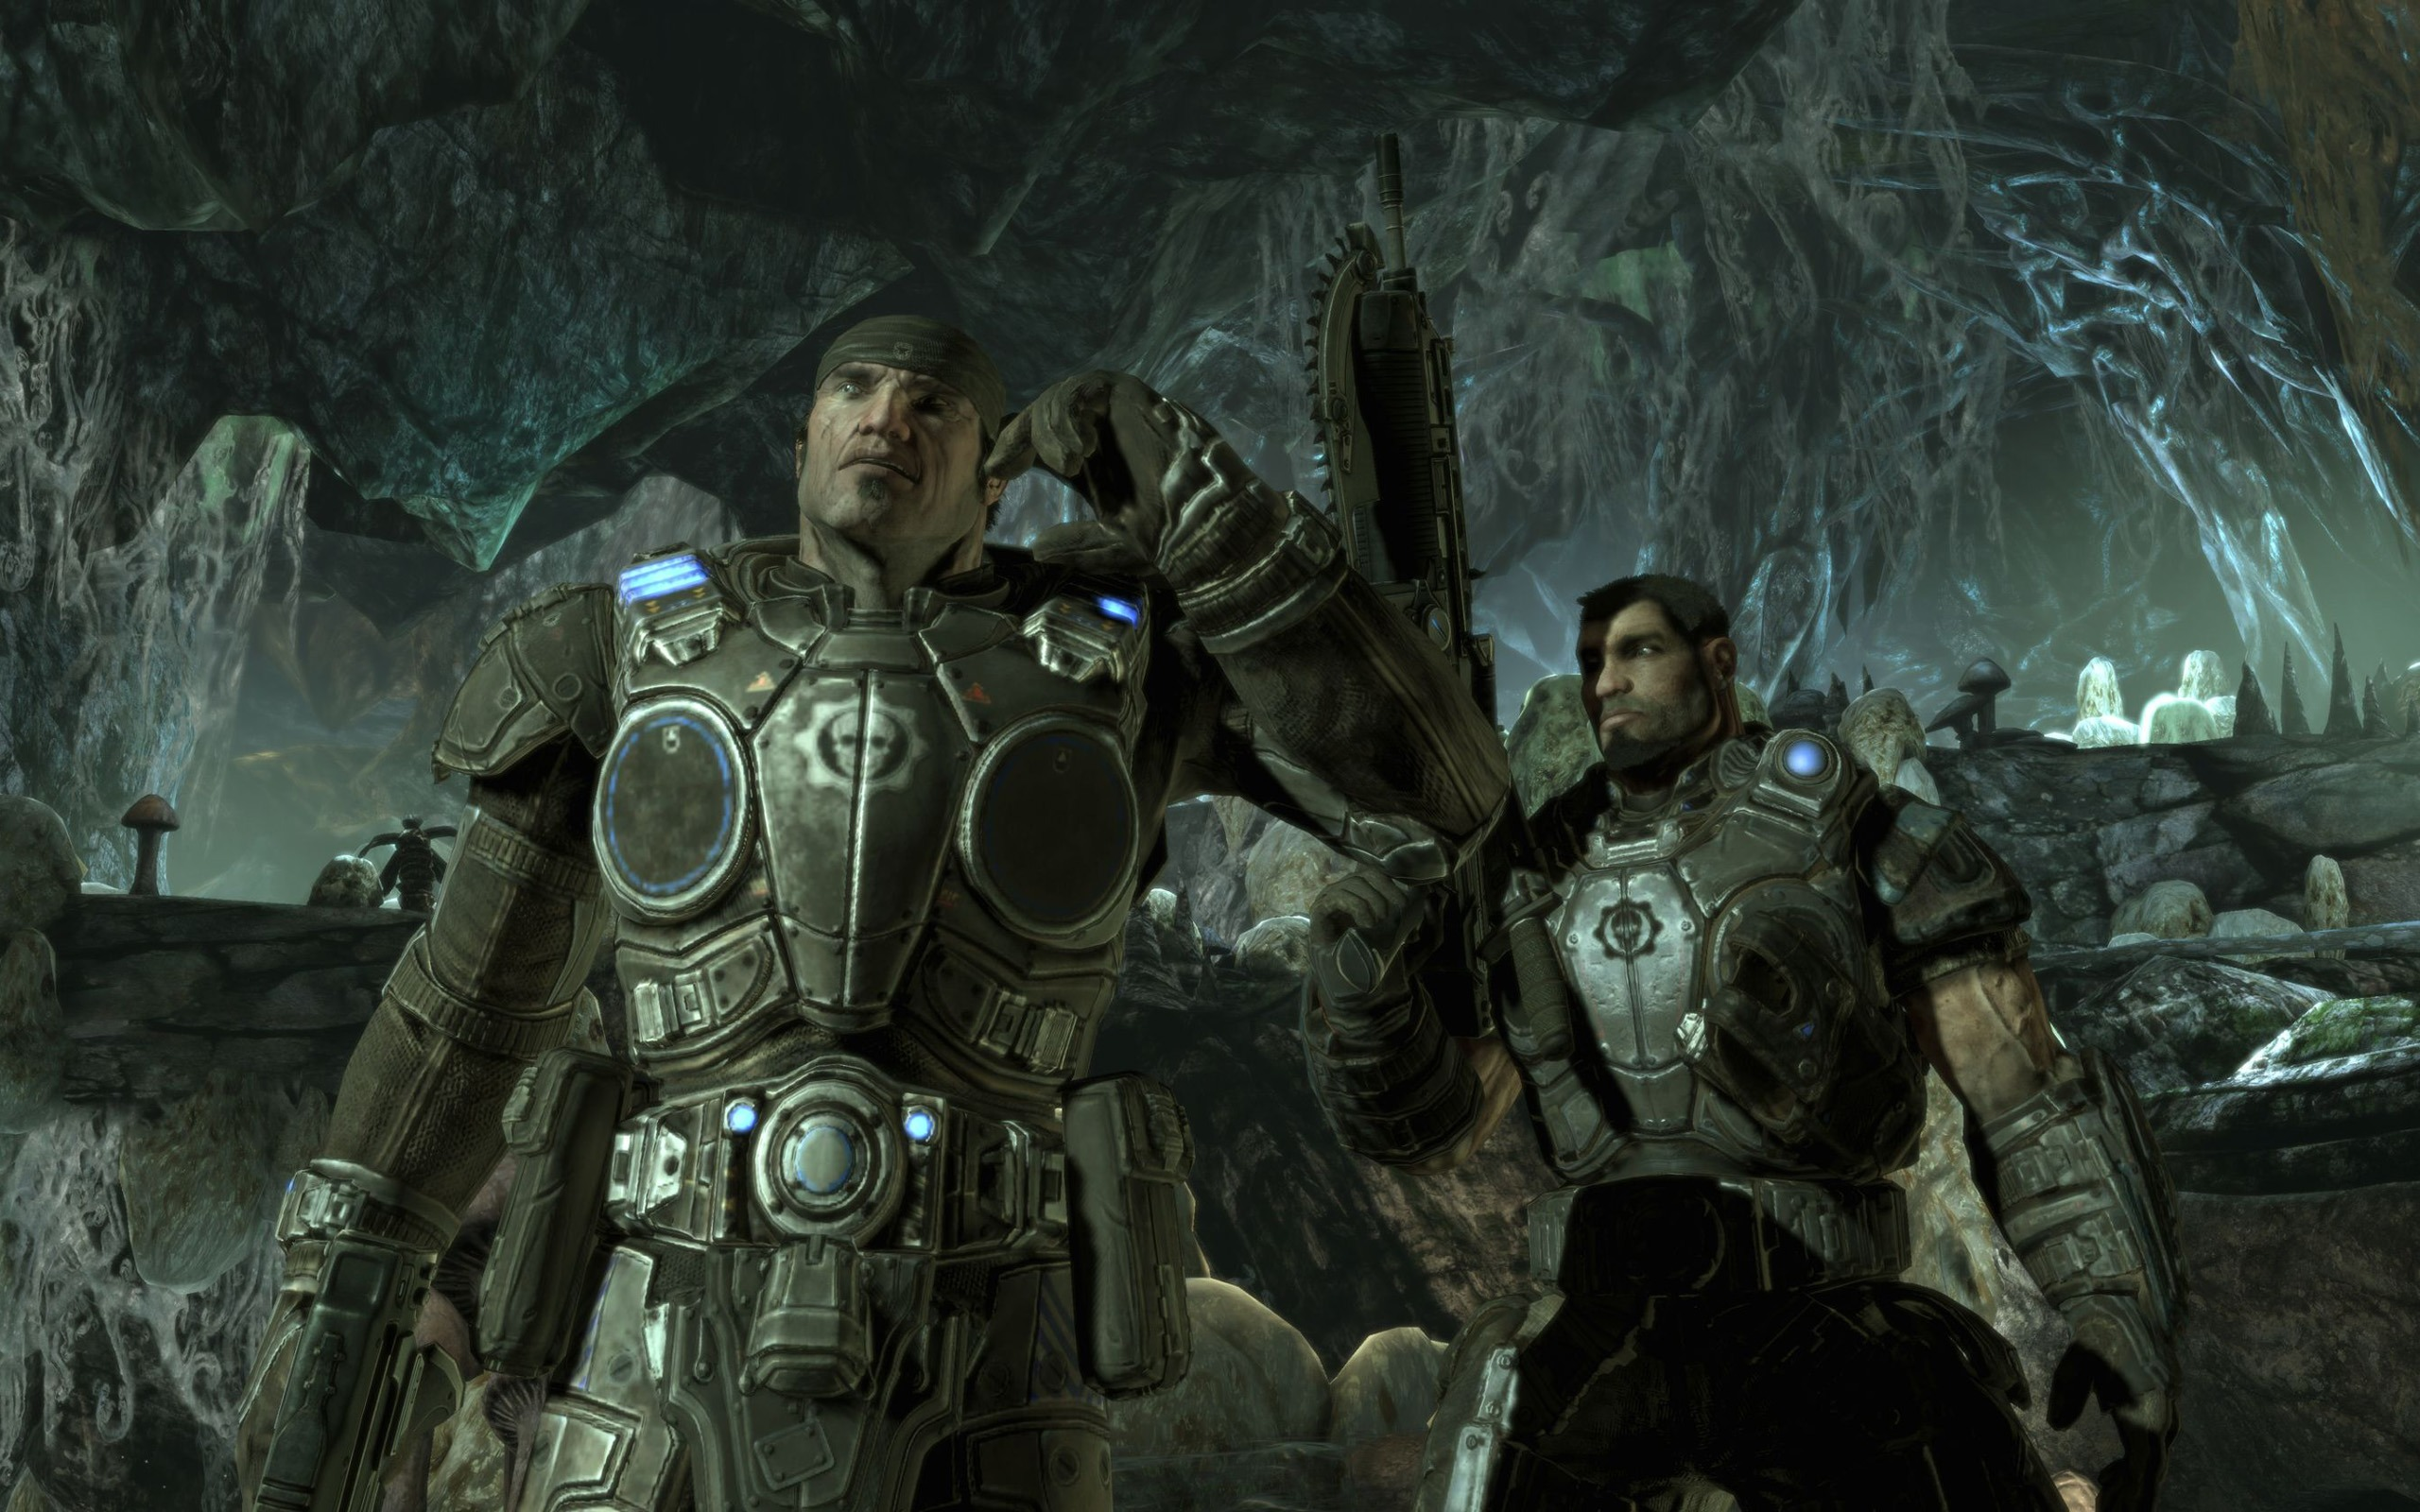 gears of war 2 hd wallpaper (2) #11 - 2560x1600 wallpaper download